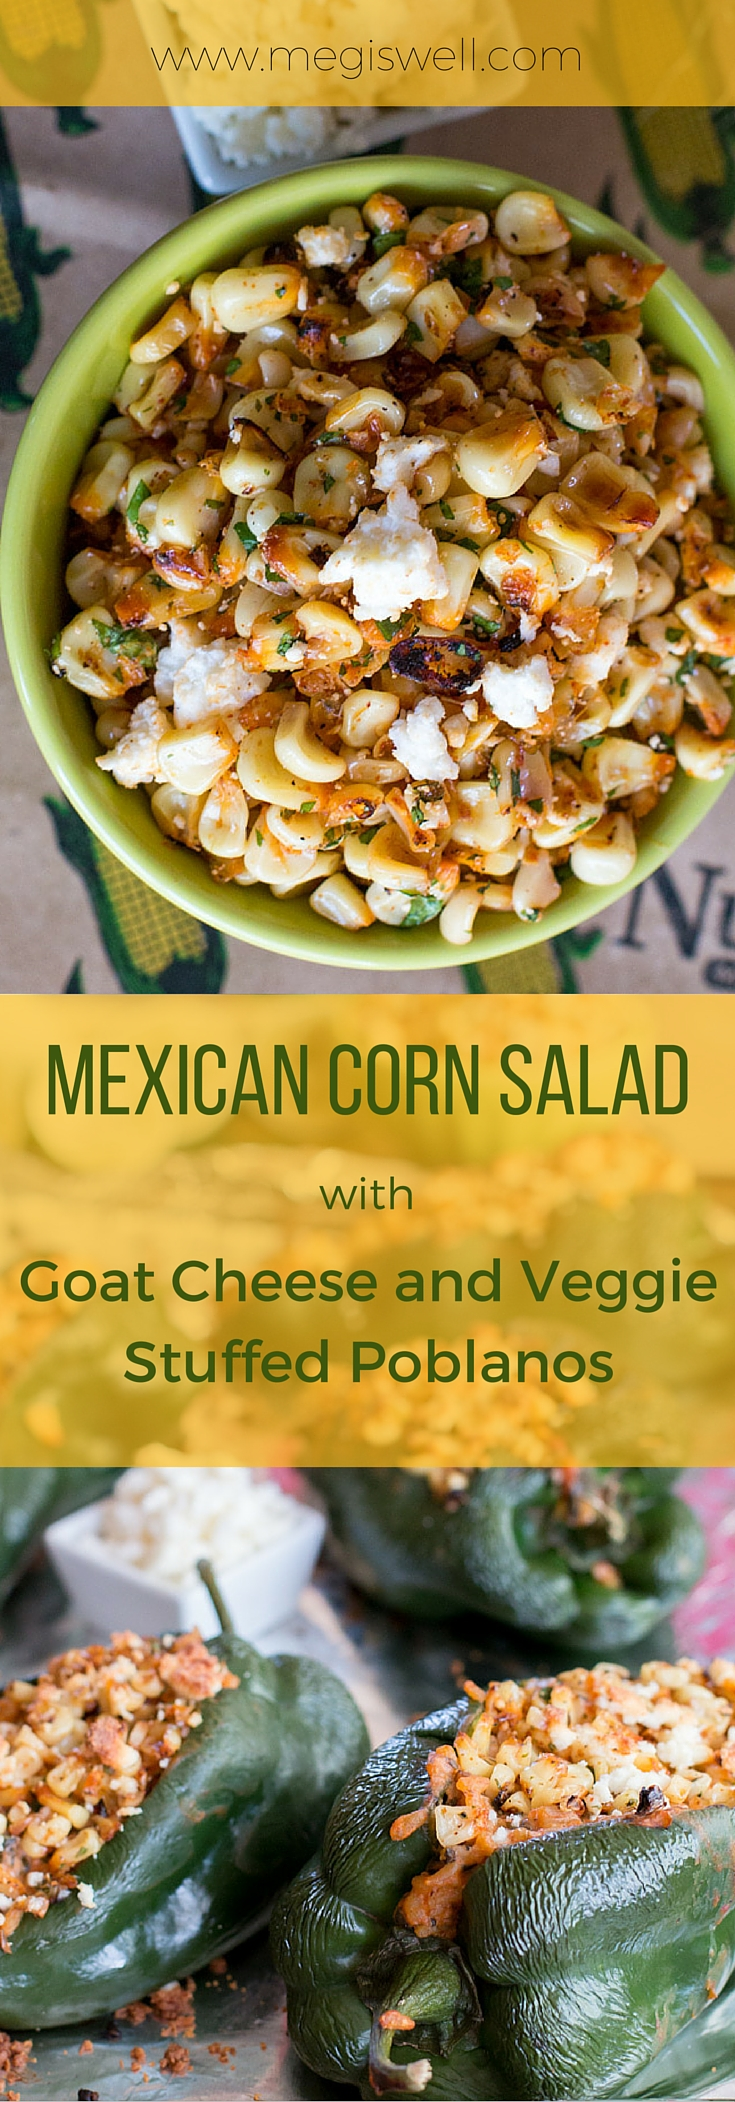 The spicy, sweet, and salty flavors in this Mexican Corn Salad pair perfectly with the smokiness of Goat Cheese and Veggie Stuffed Poblanos | www.megiswell.com